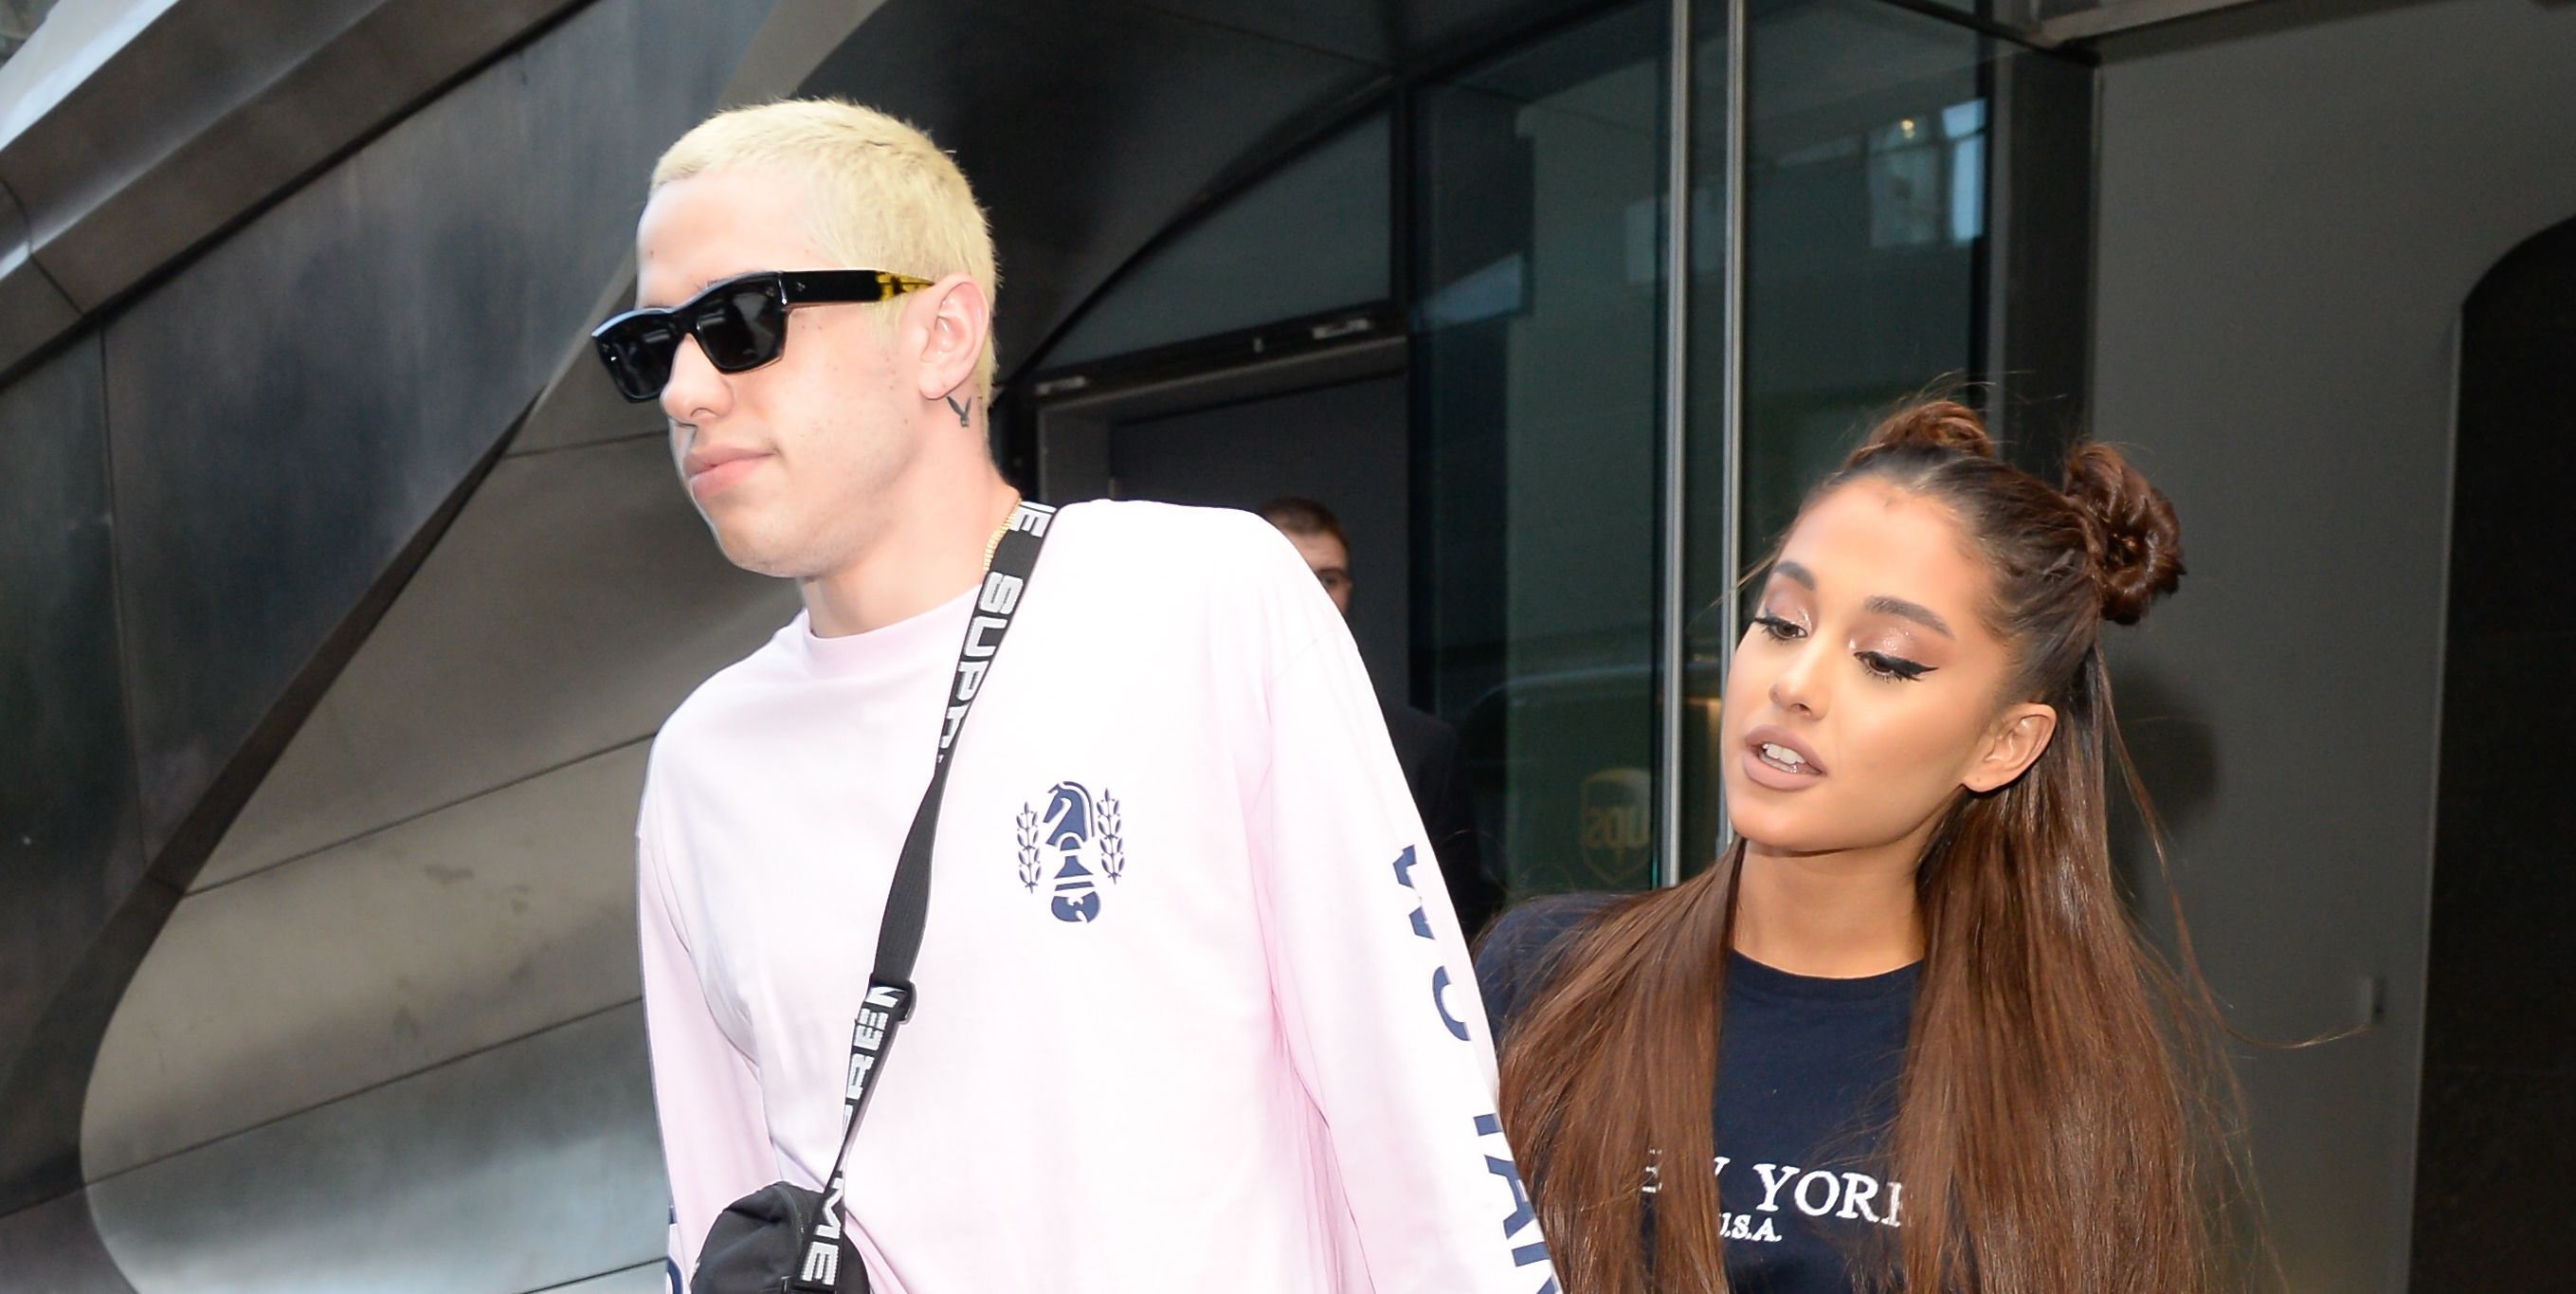 Ariana Grande Pete Davidson in New York City - July 11, 2018